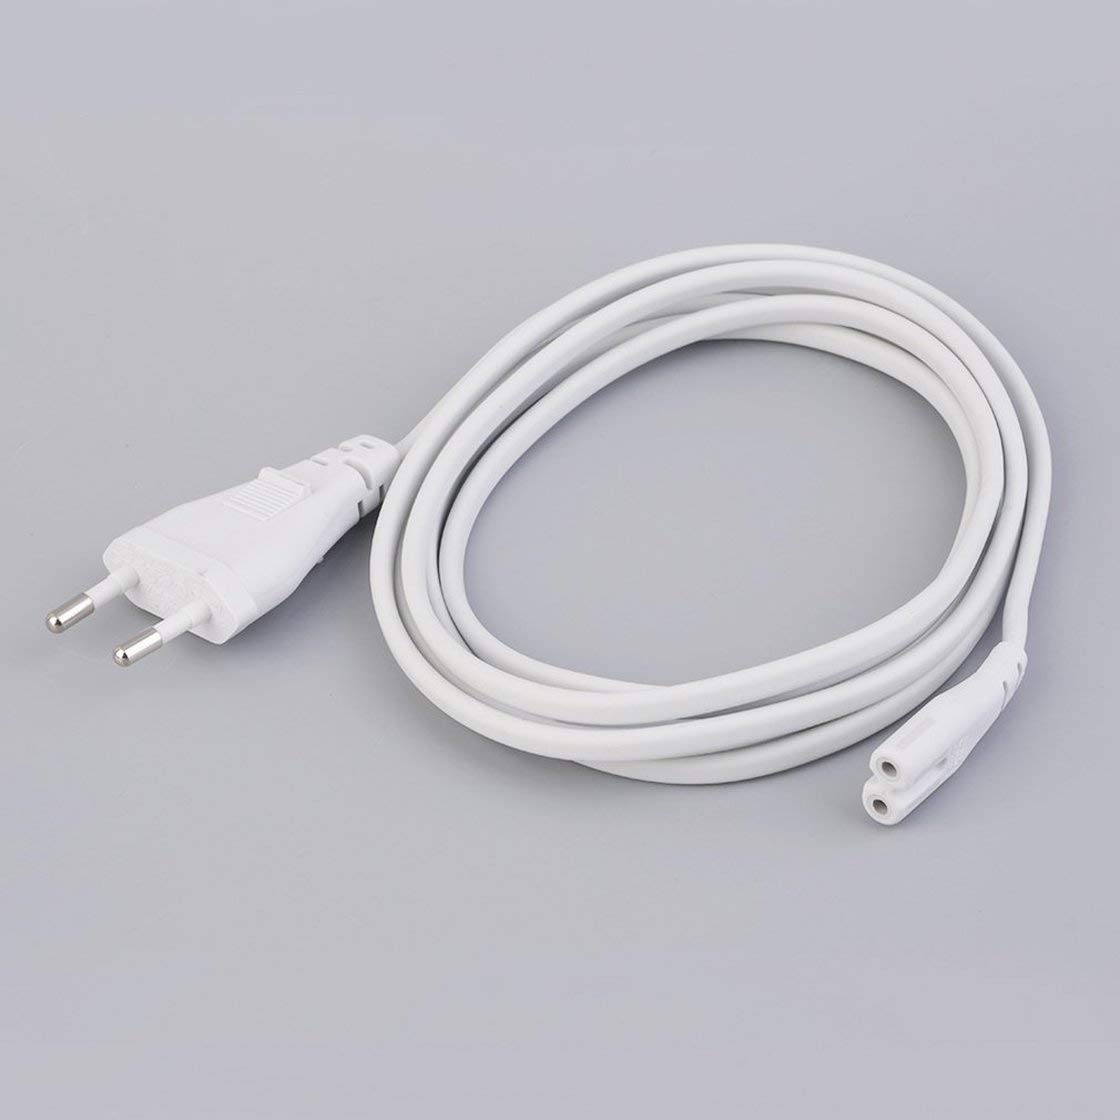 1Pc 2M Volex EU European 2-Prong Port AC Power Cord Cable For Mac Mini Router for Apple TV For PS2 For PS3 Slim Power Cable